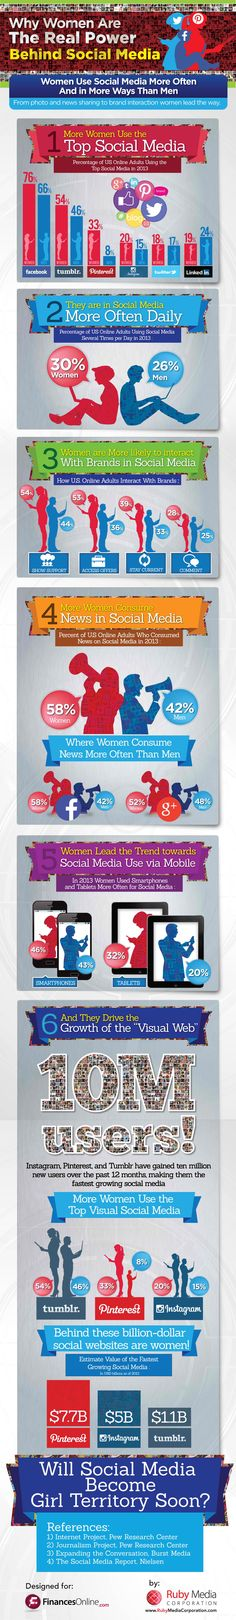 Who Runs the Social Media World: Men or Women? [#infographic]